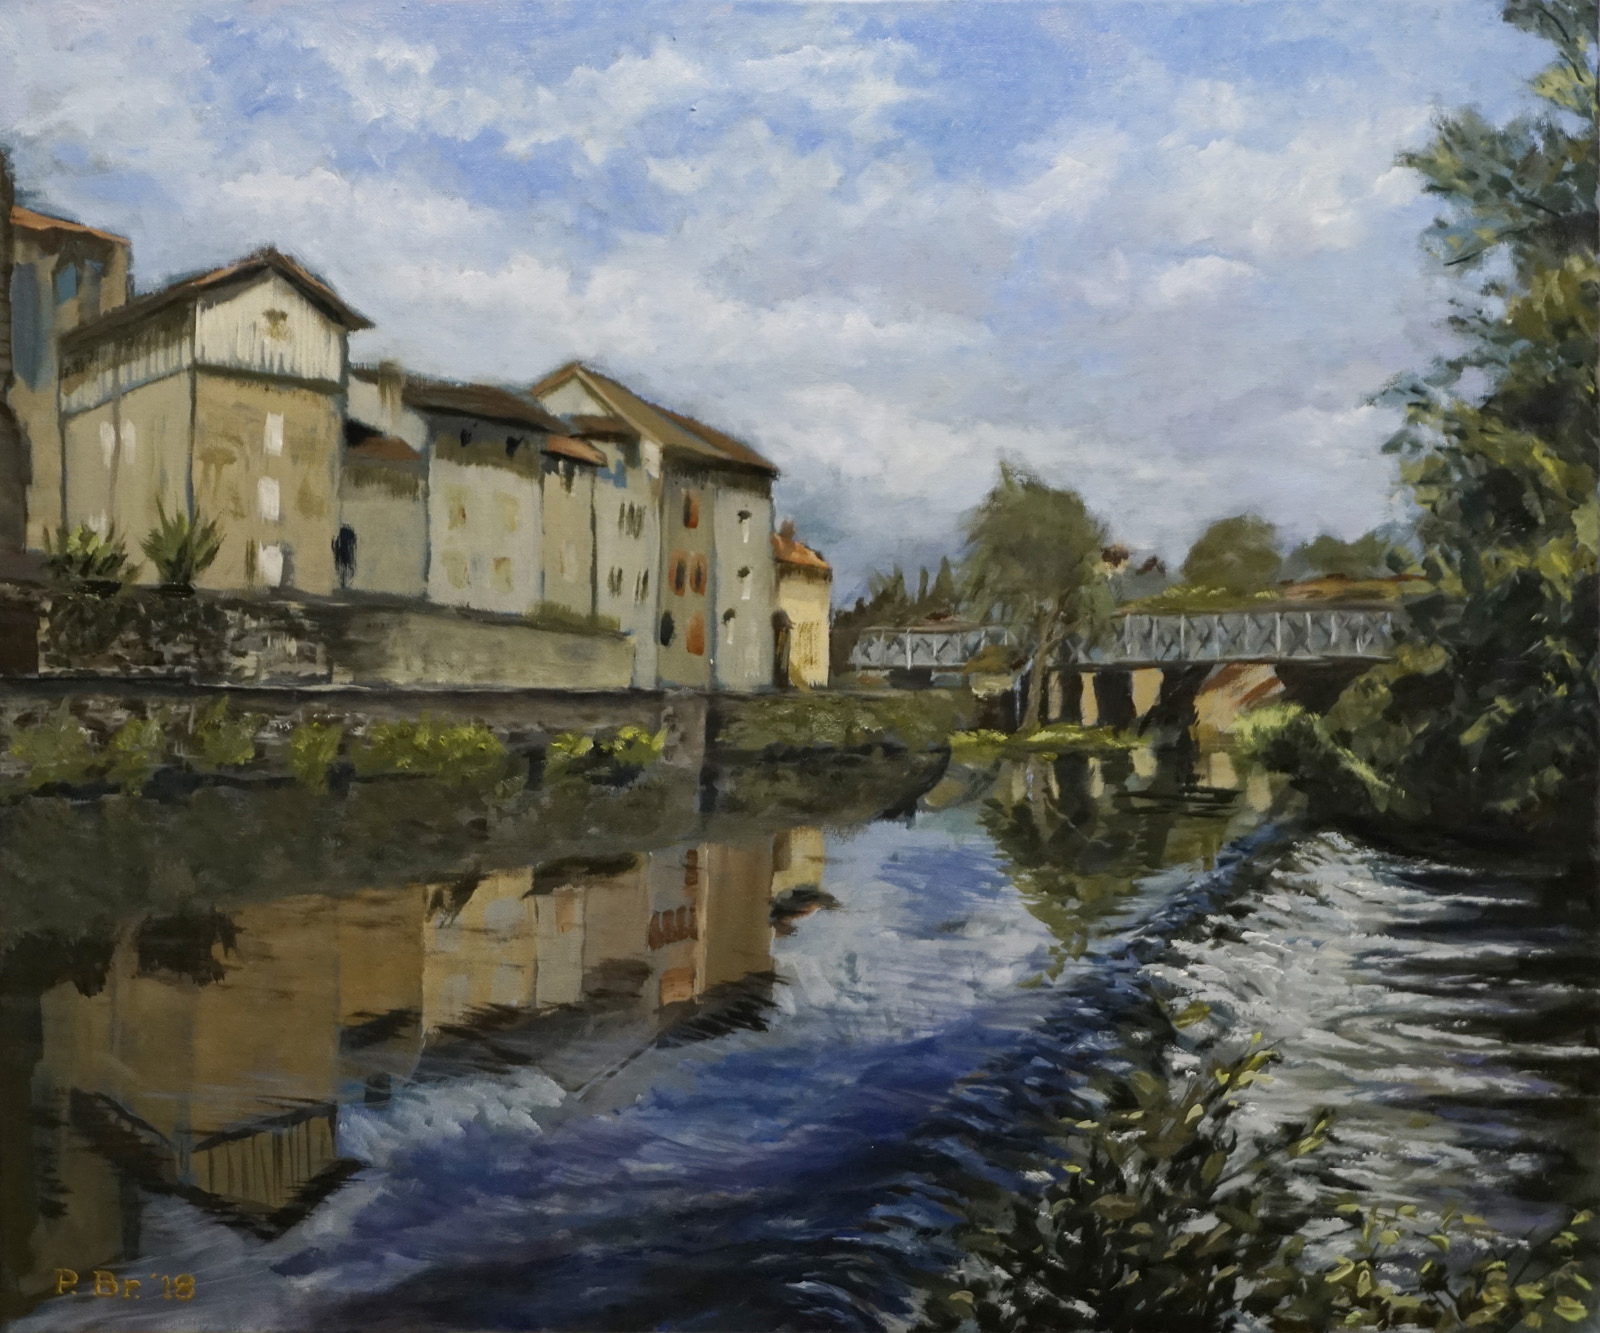 Eymoutier, Limousin, France - Painted by Pieter Broertjes